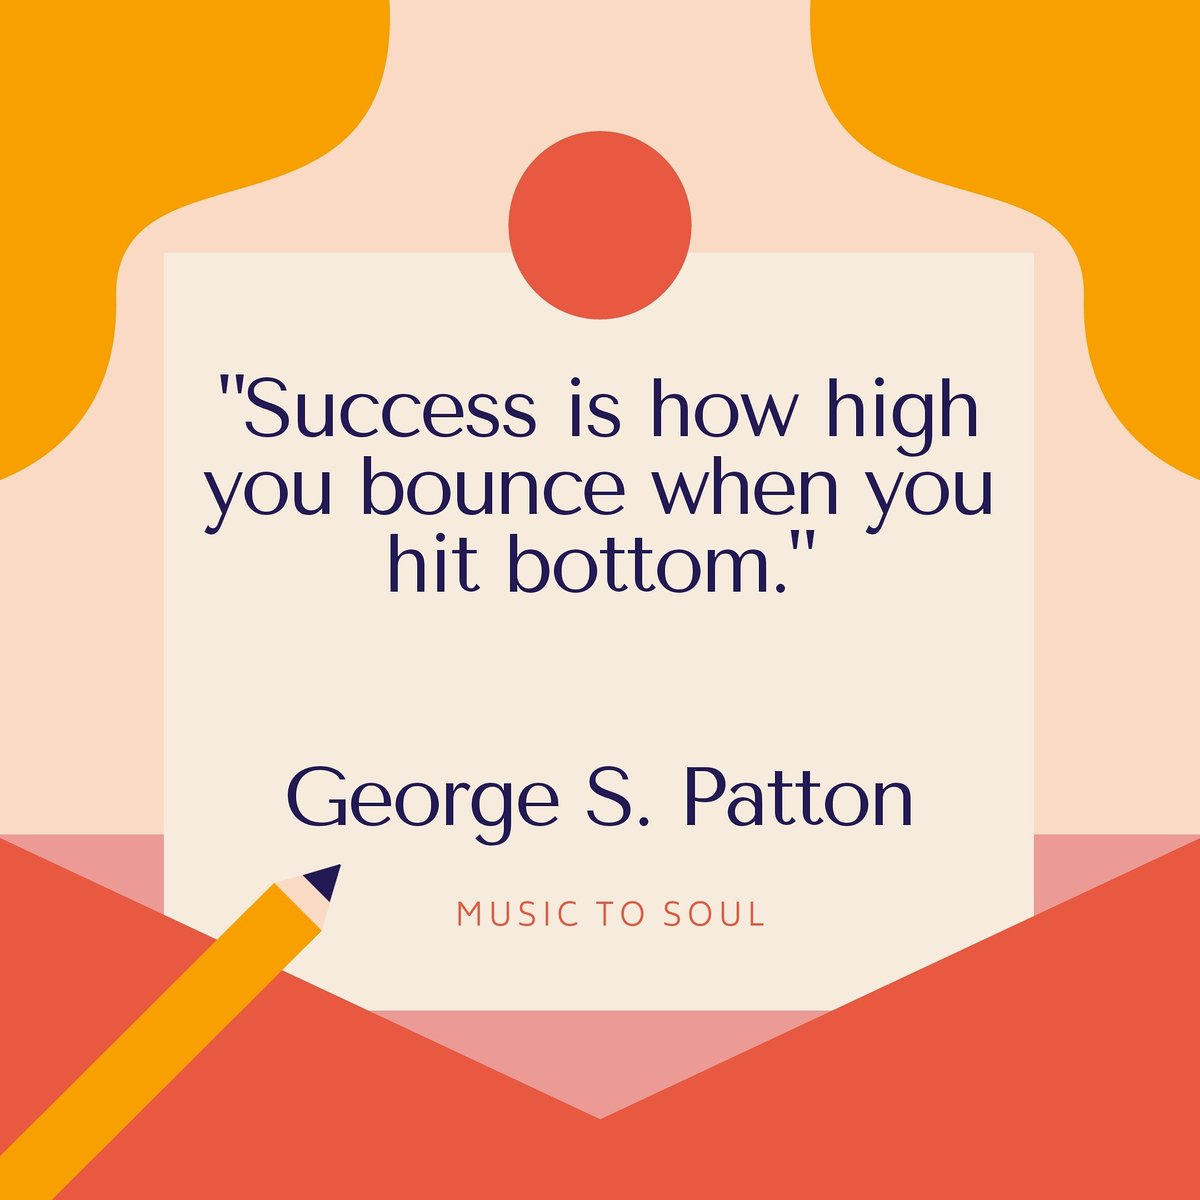 """""""Success is how high you bounce when you hit bottom."""" #follow #f4f #followme #followforfollow #follow4follow #teamfollowback #followher #followbackteam #followhim #followall #followalways #followback #me #love #pleasefollow #follows #follower #following"""